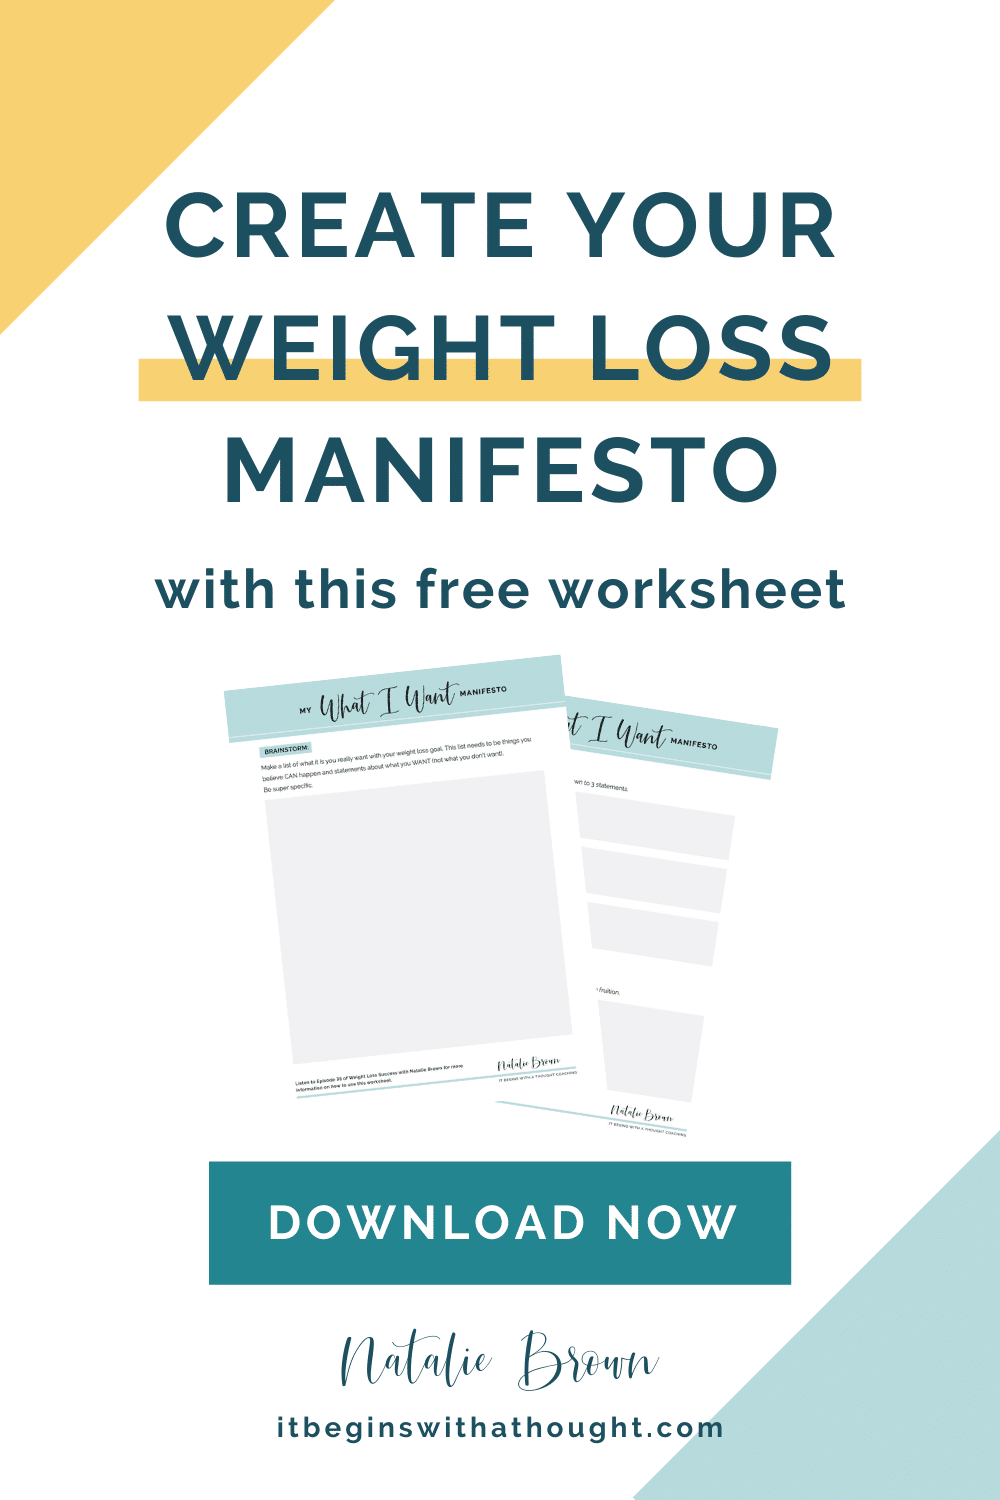 Learn how to create your own weight loss manifesto: a vision of exactly what you want and how you'll get there. Download the free worksheet.